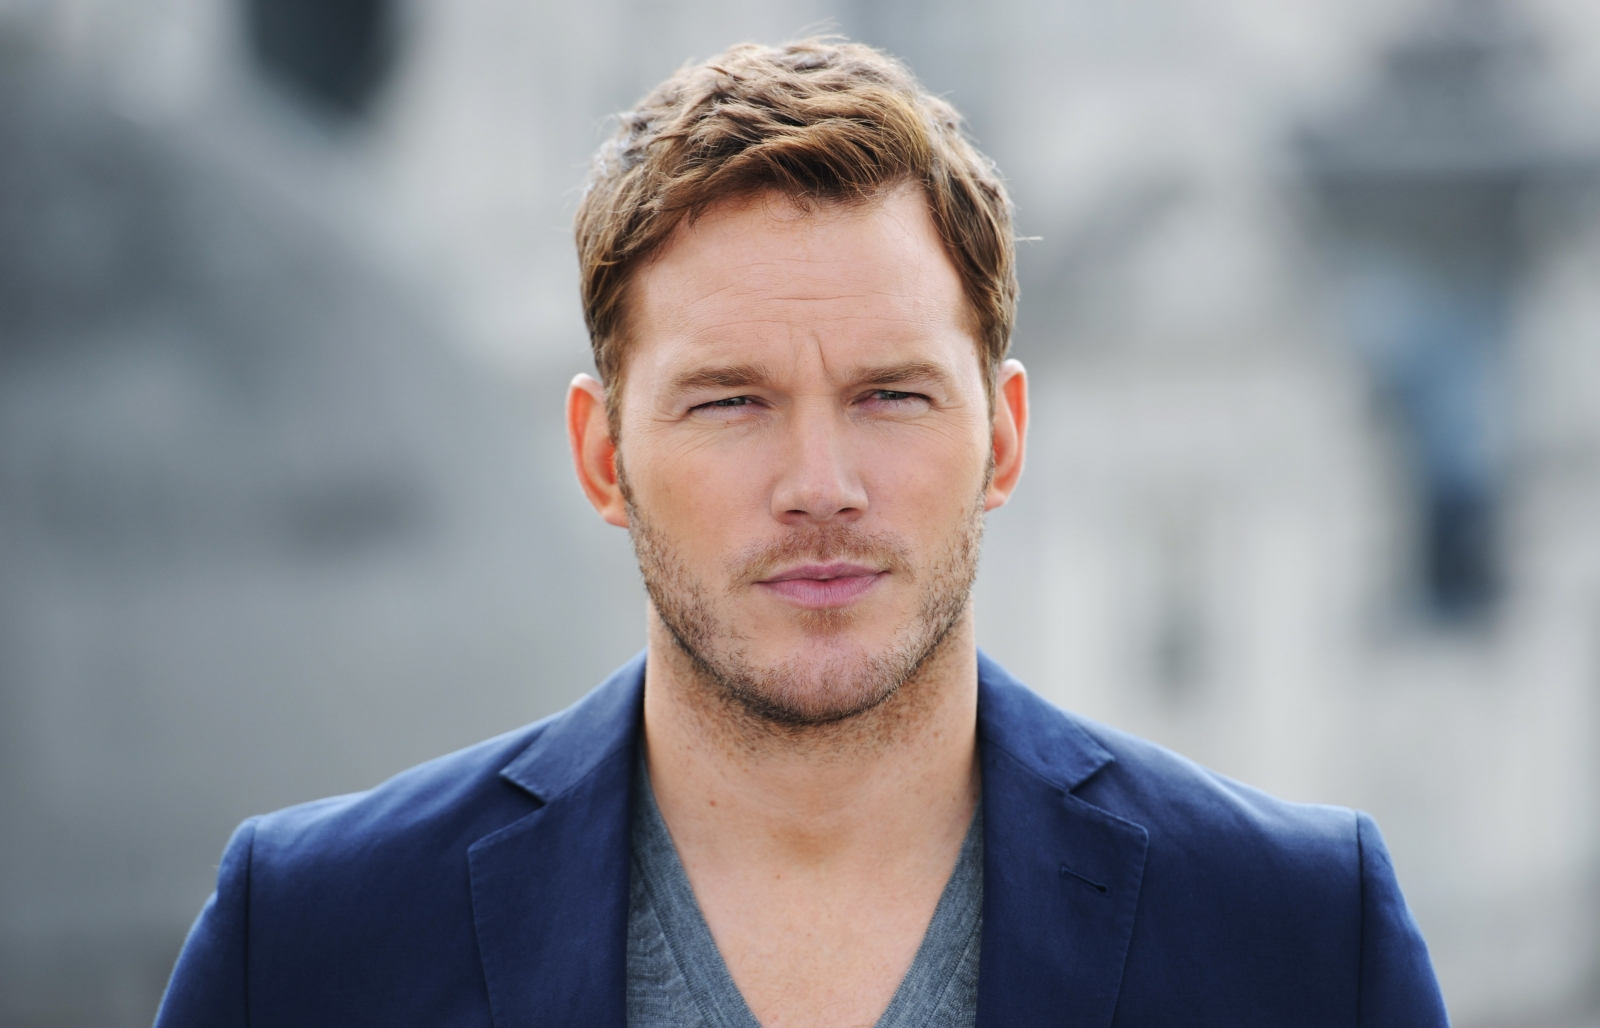 Chris Pratt Called Too Fat The Quest For The Perfect